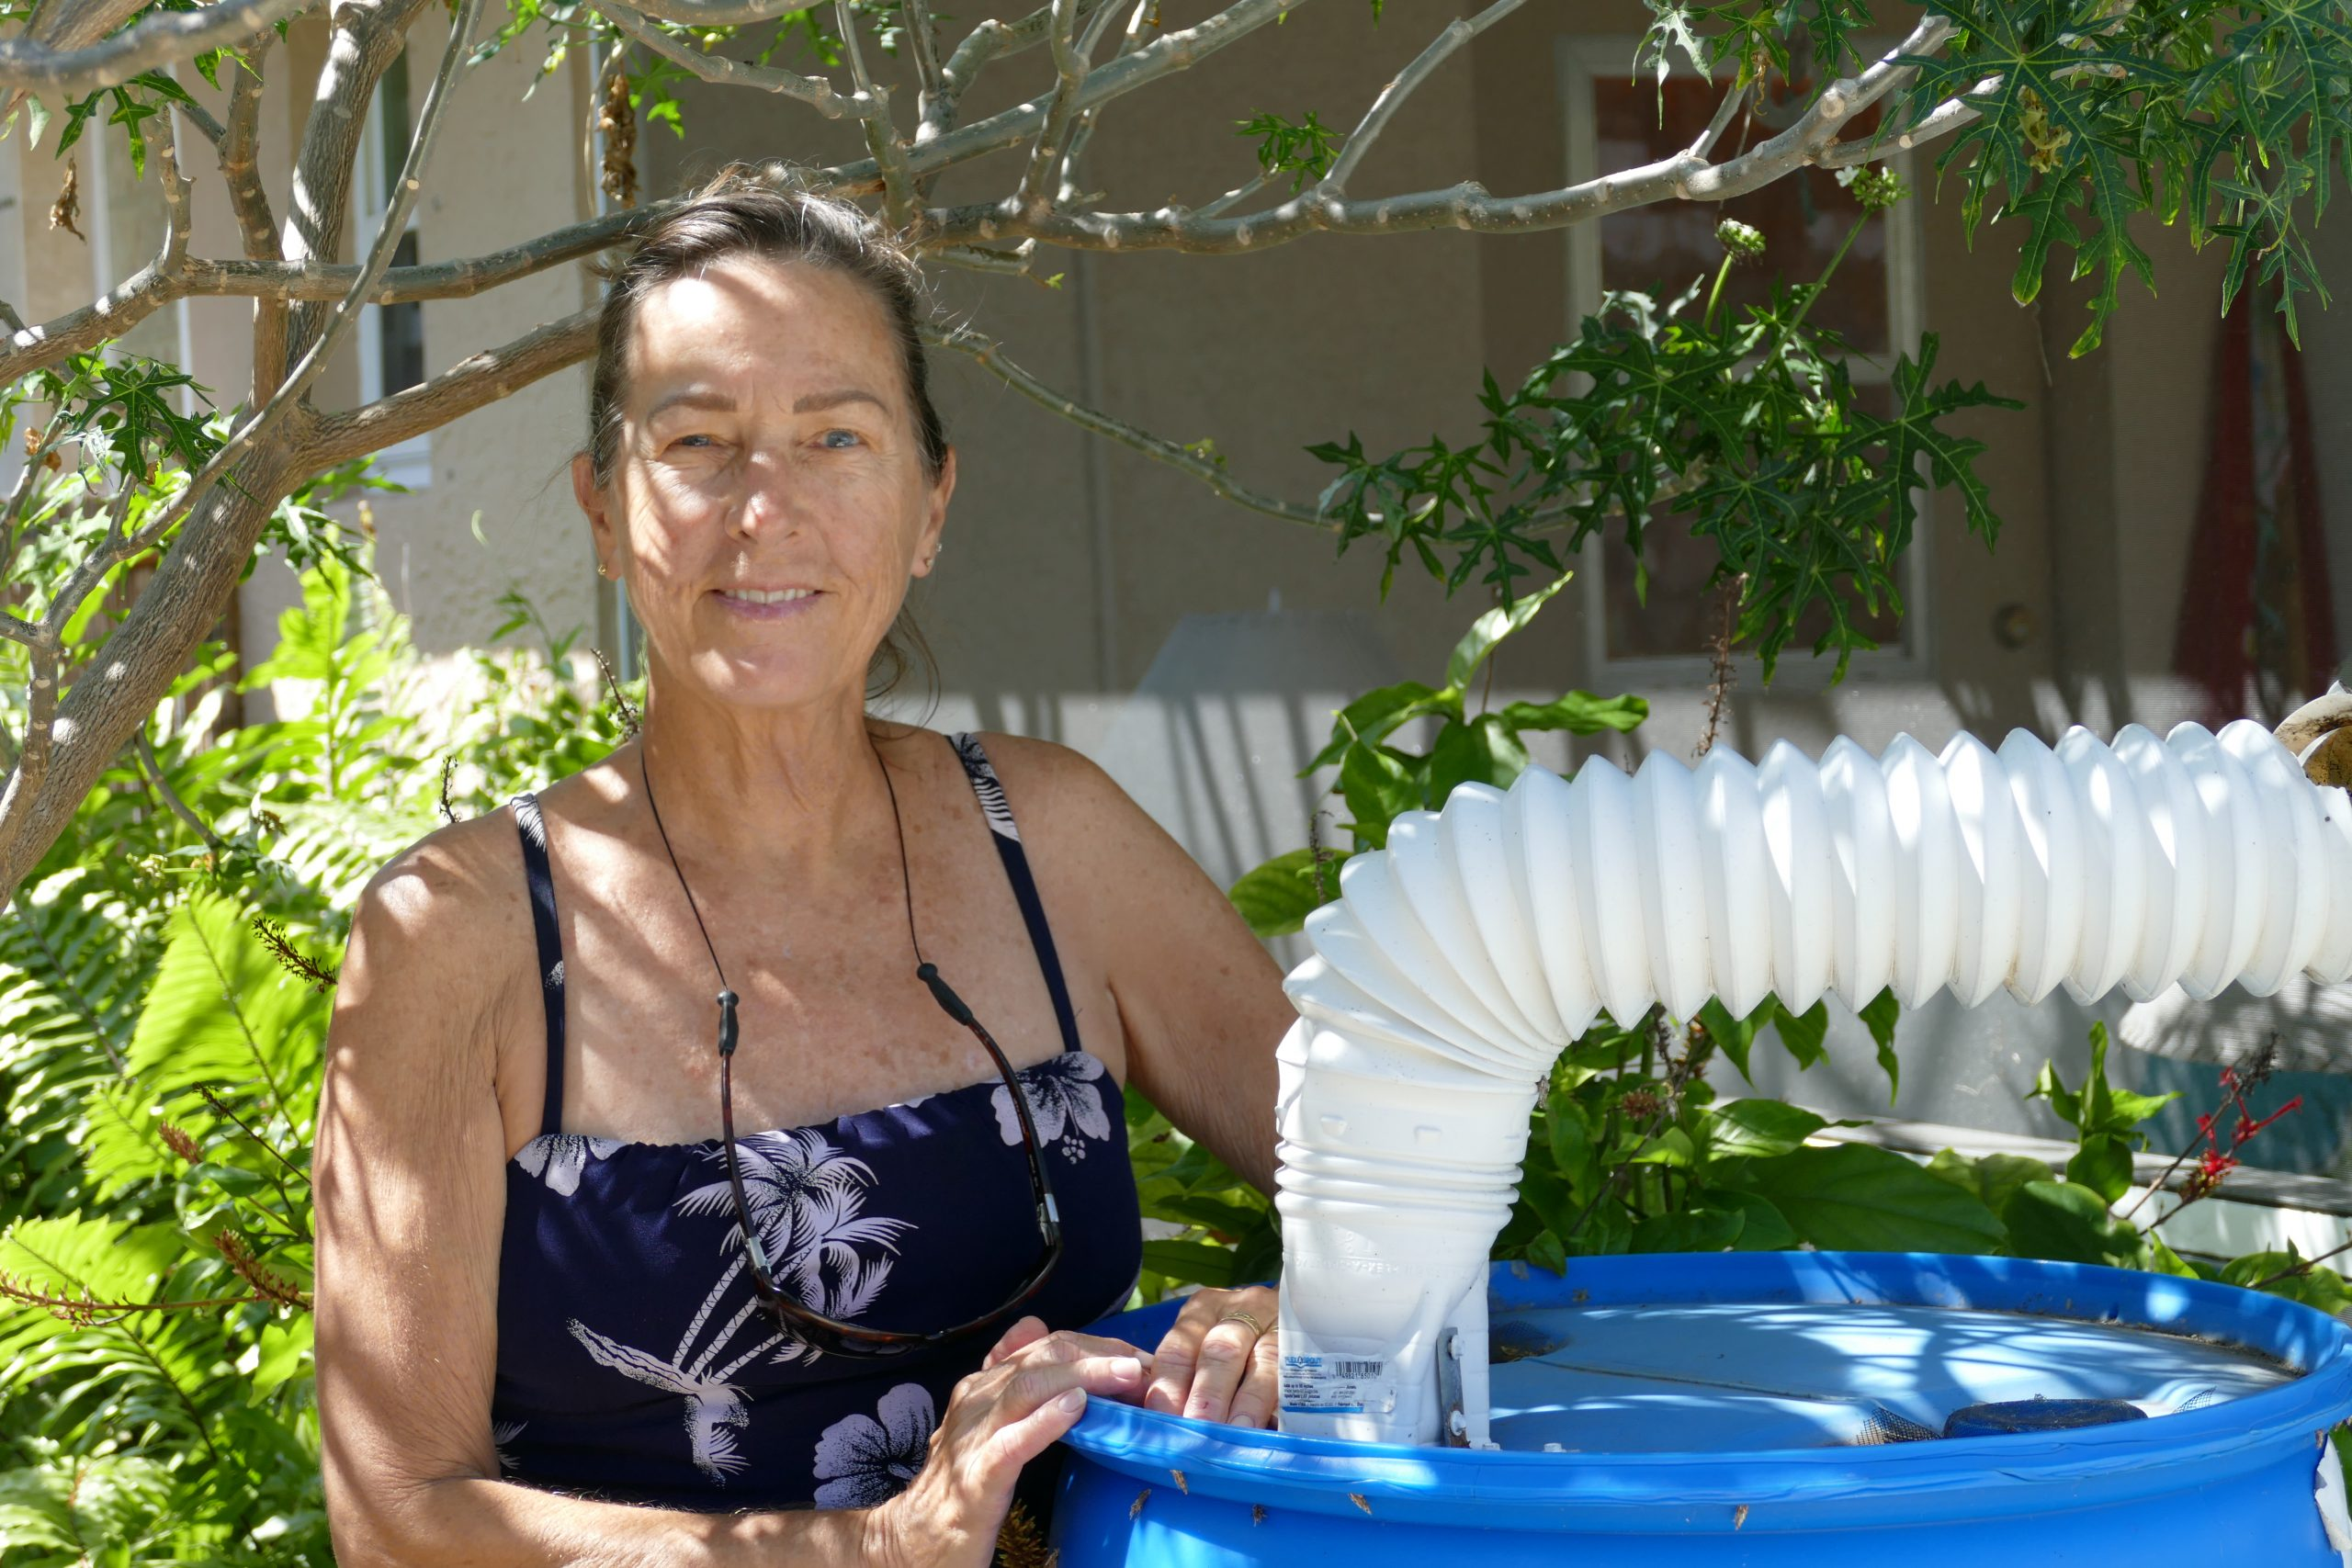 Abbey Calhoun reduces her household water bill by using a rain barrel to collect rainwater that she uses to water her garden.